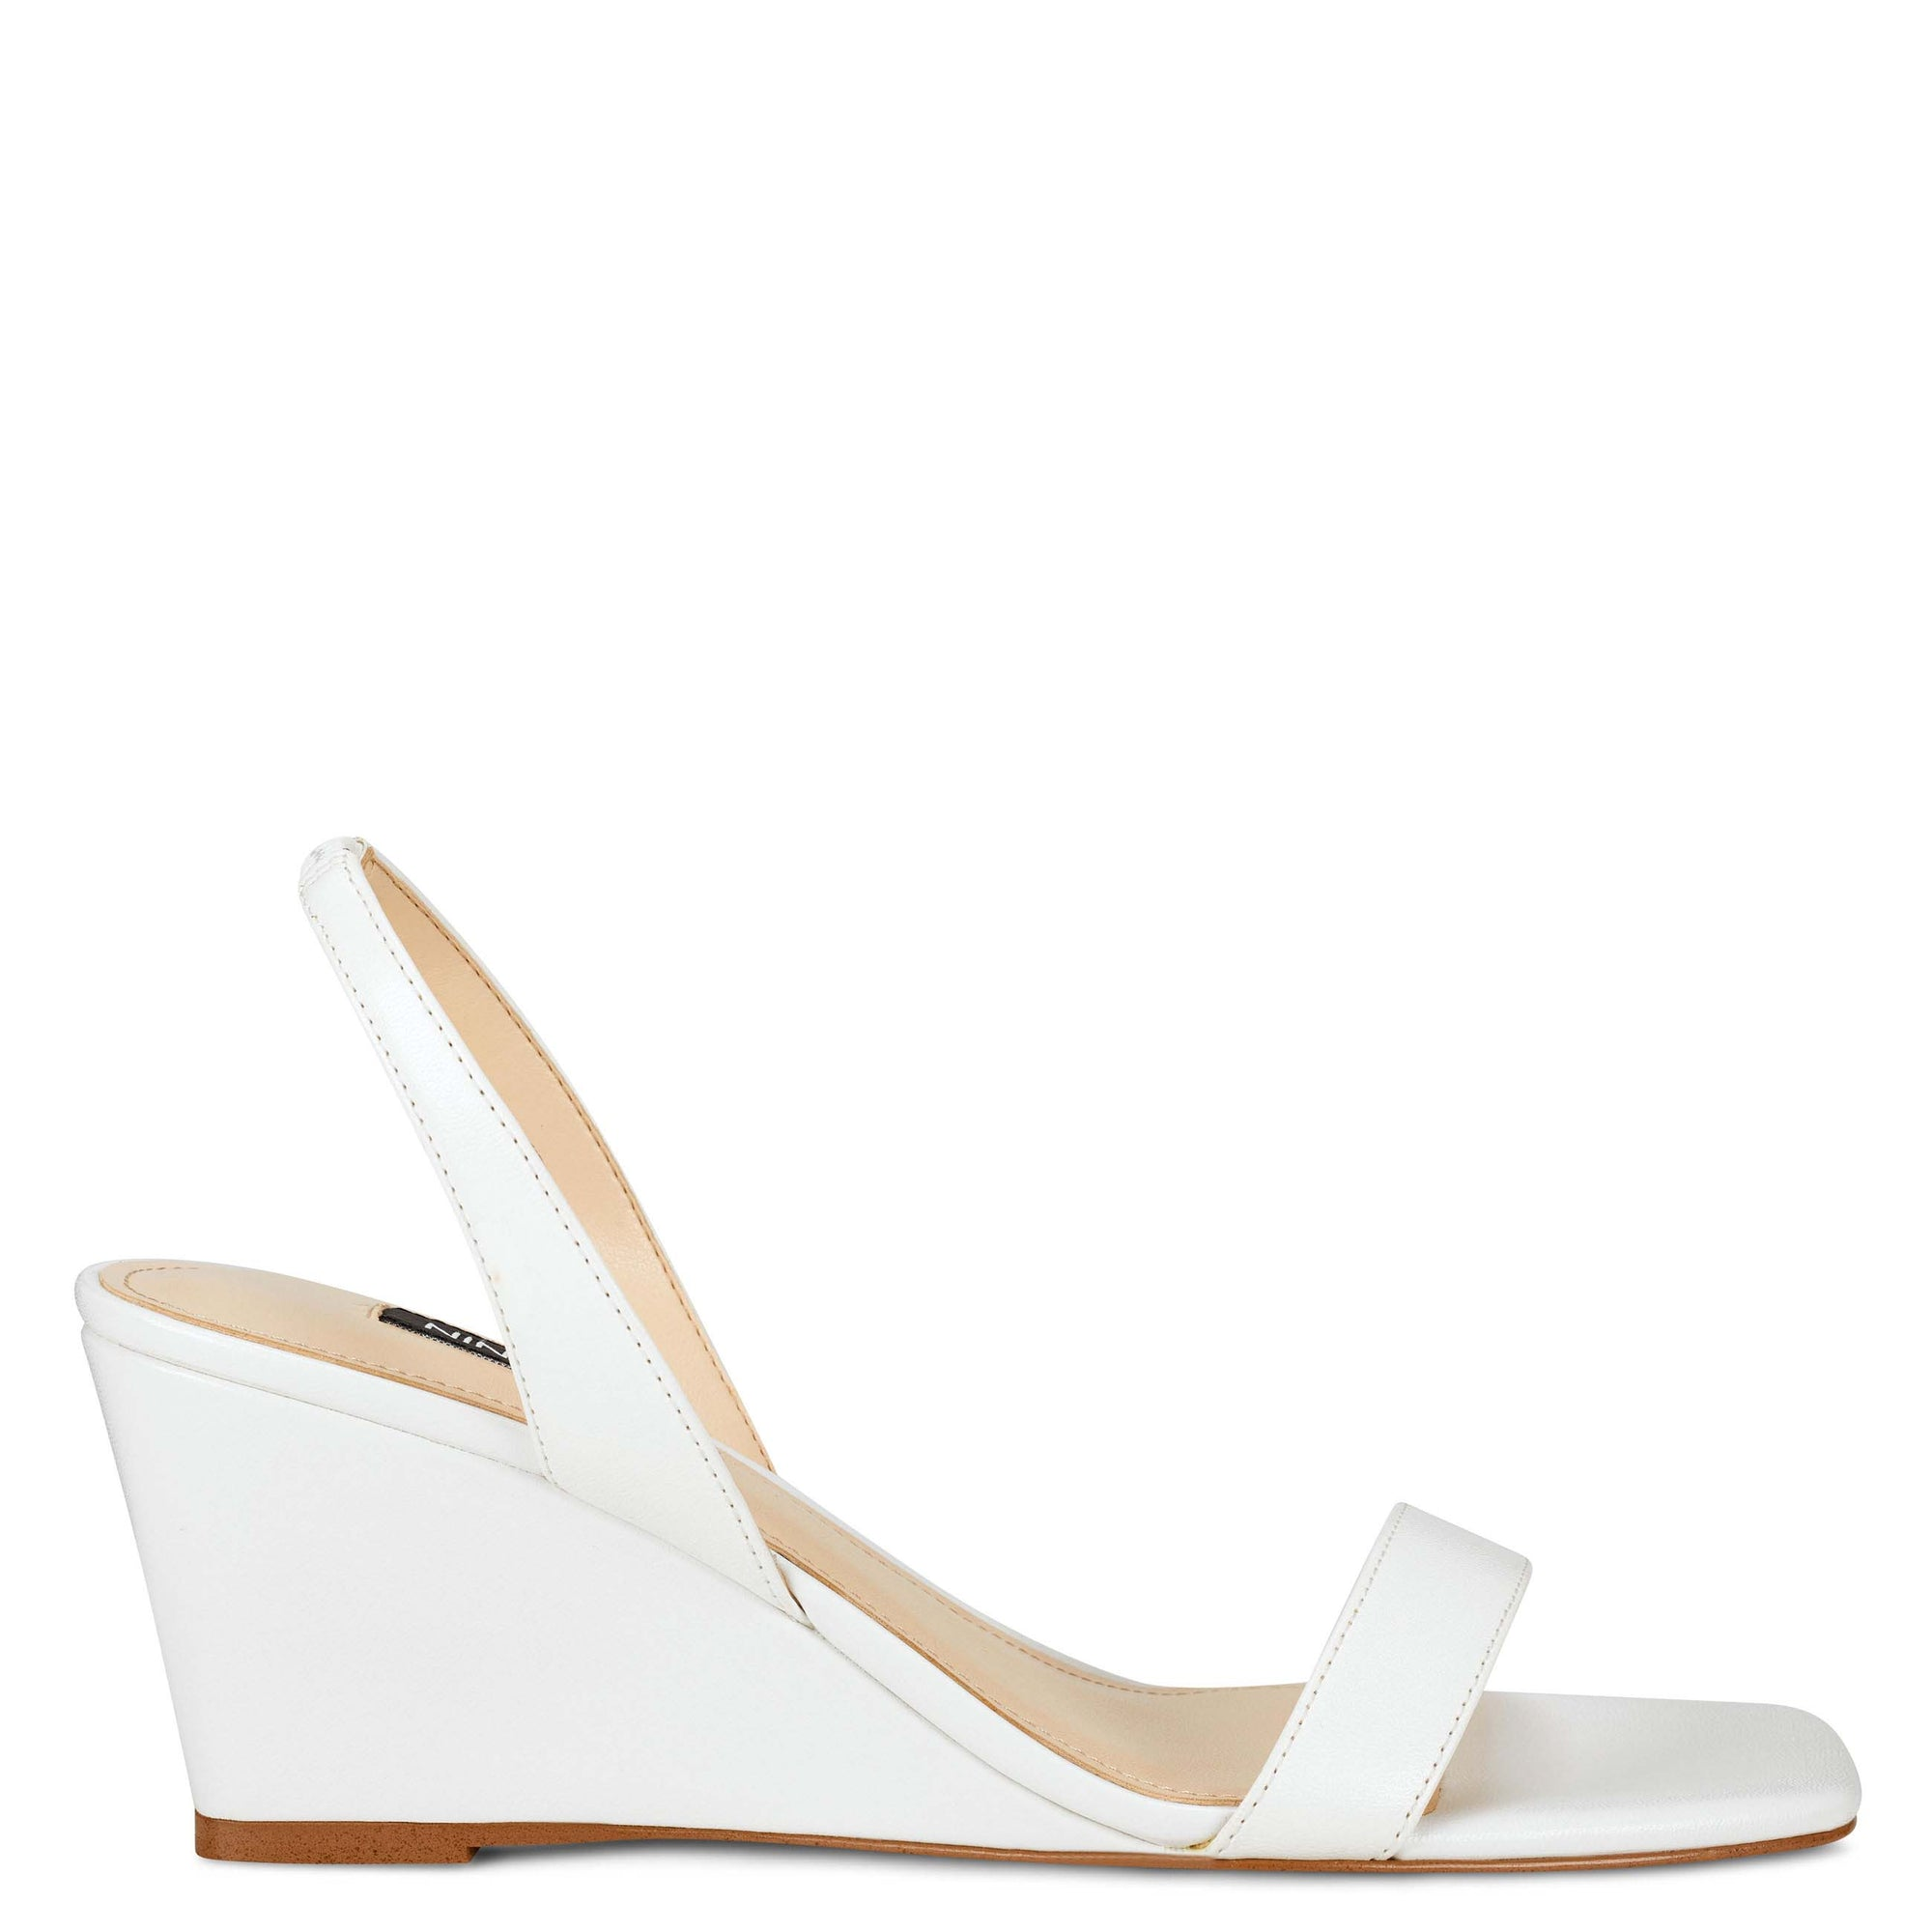 kalia-wedge-slingback-sandals-in-white